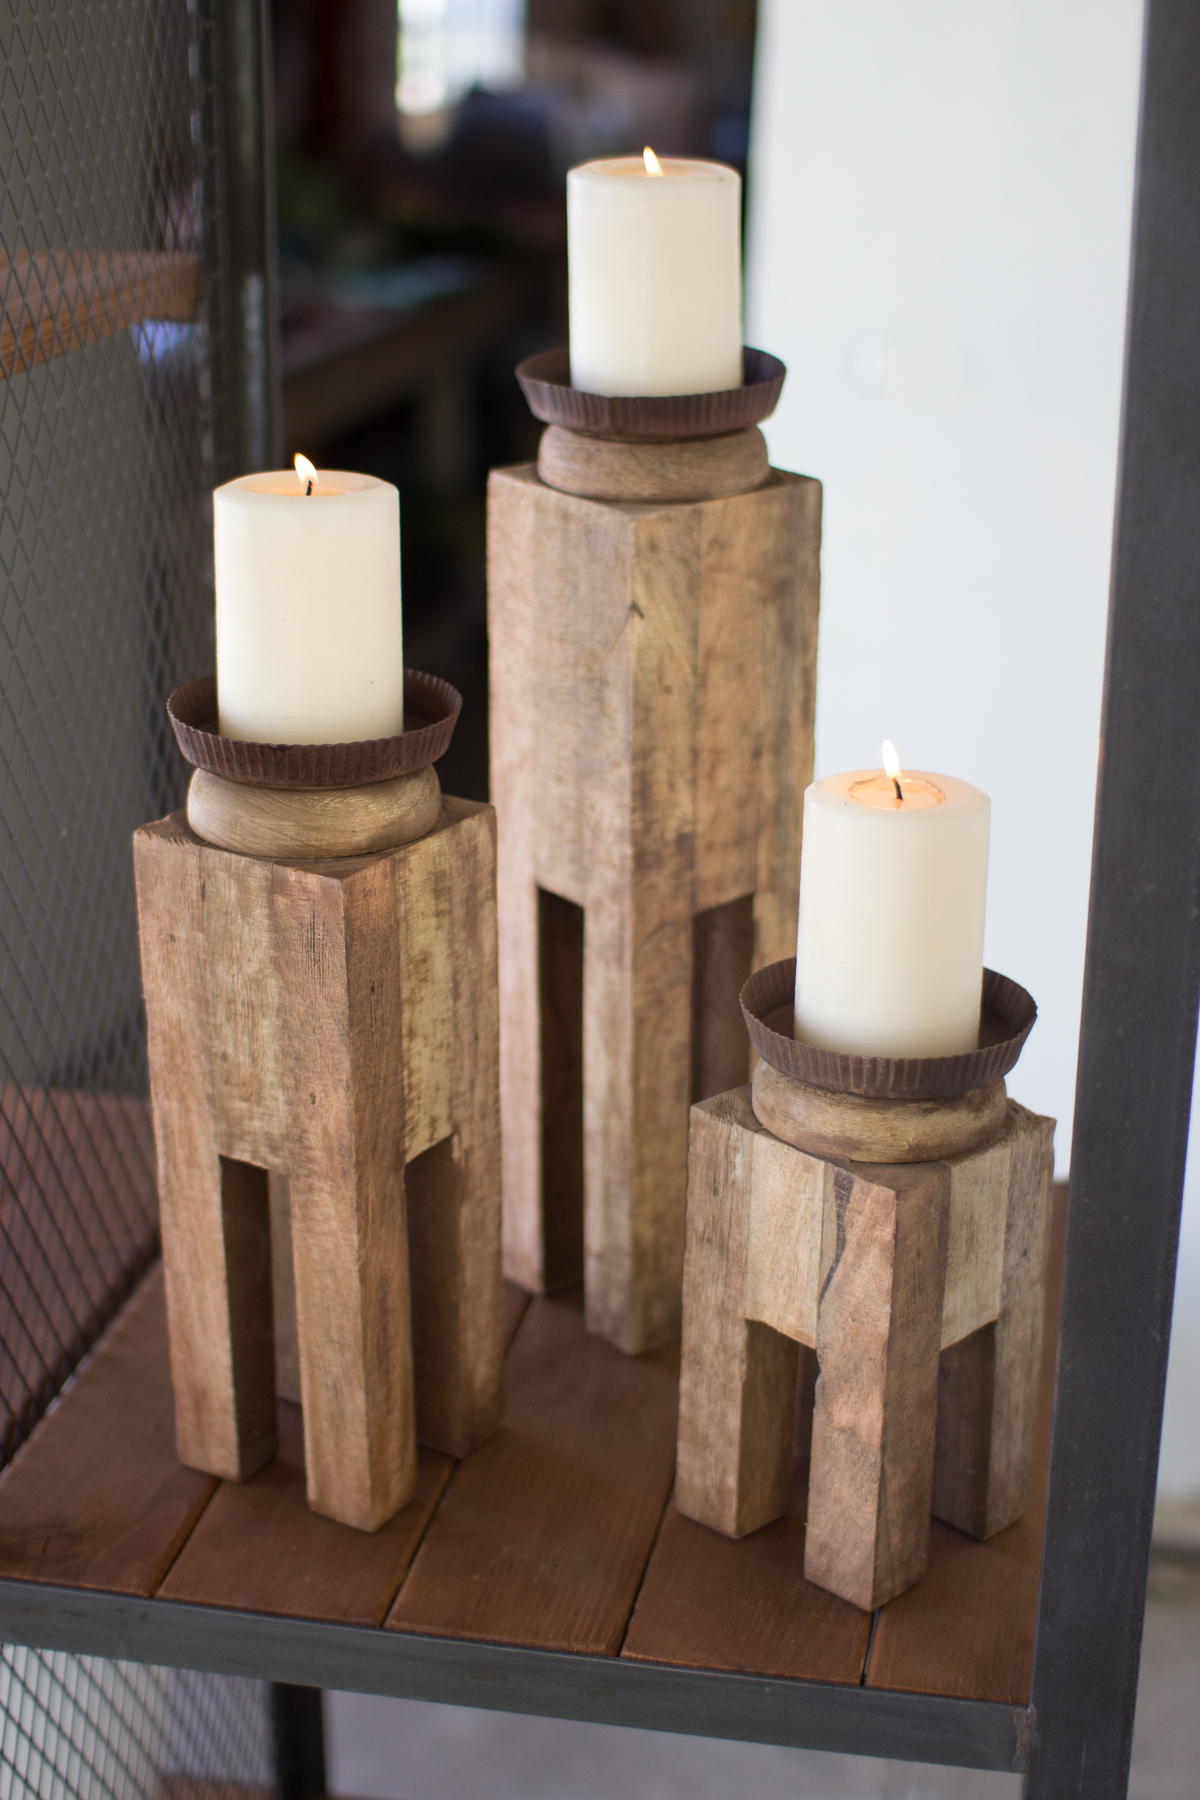 3 Square Recycled Wood Candle Holders